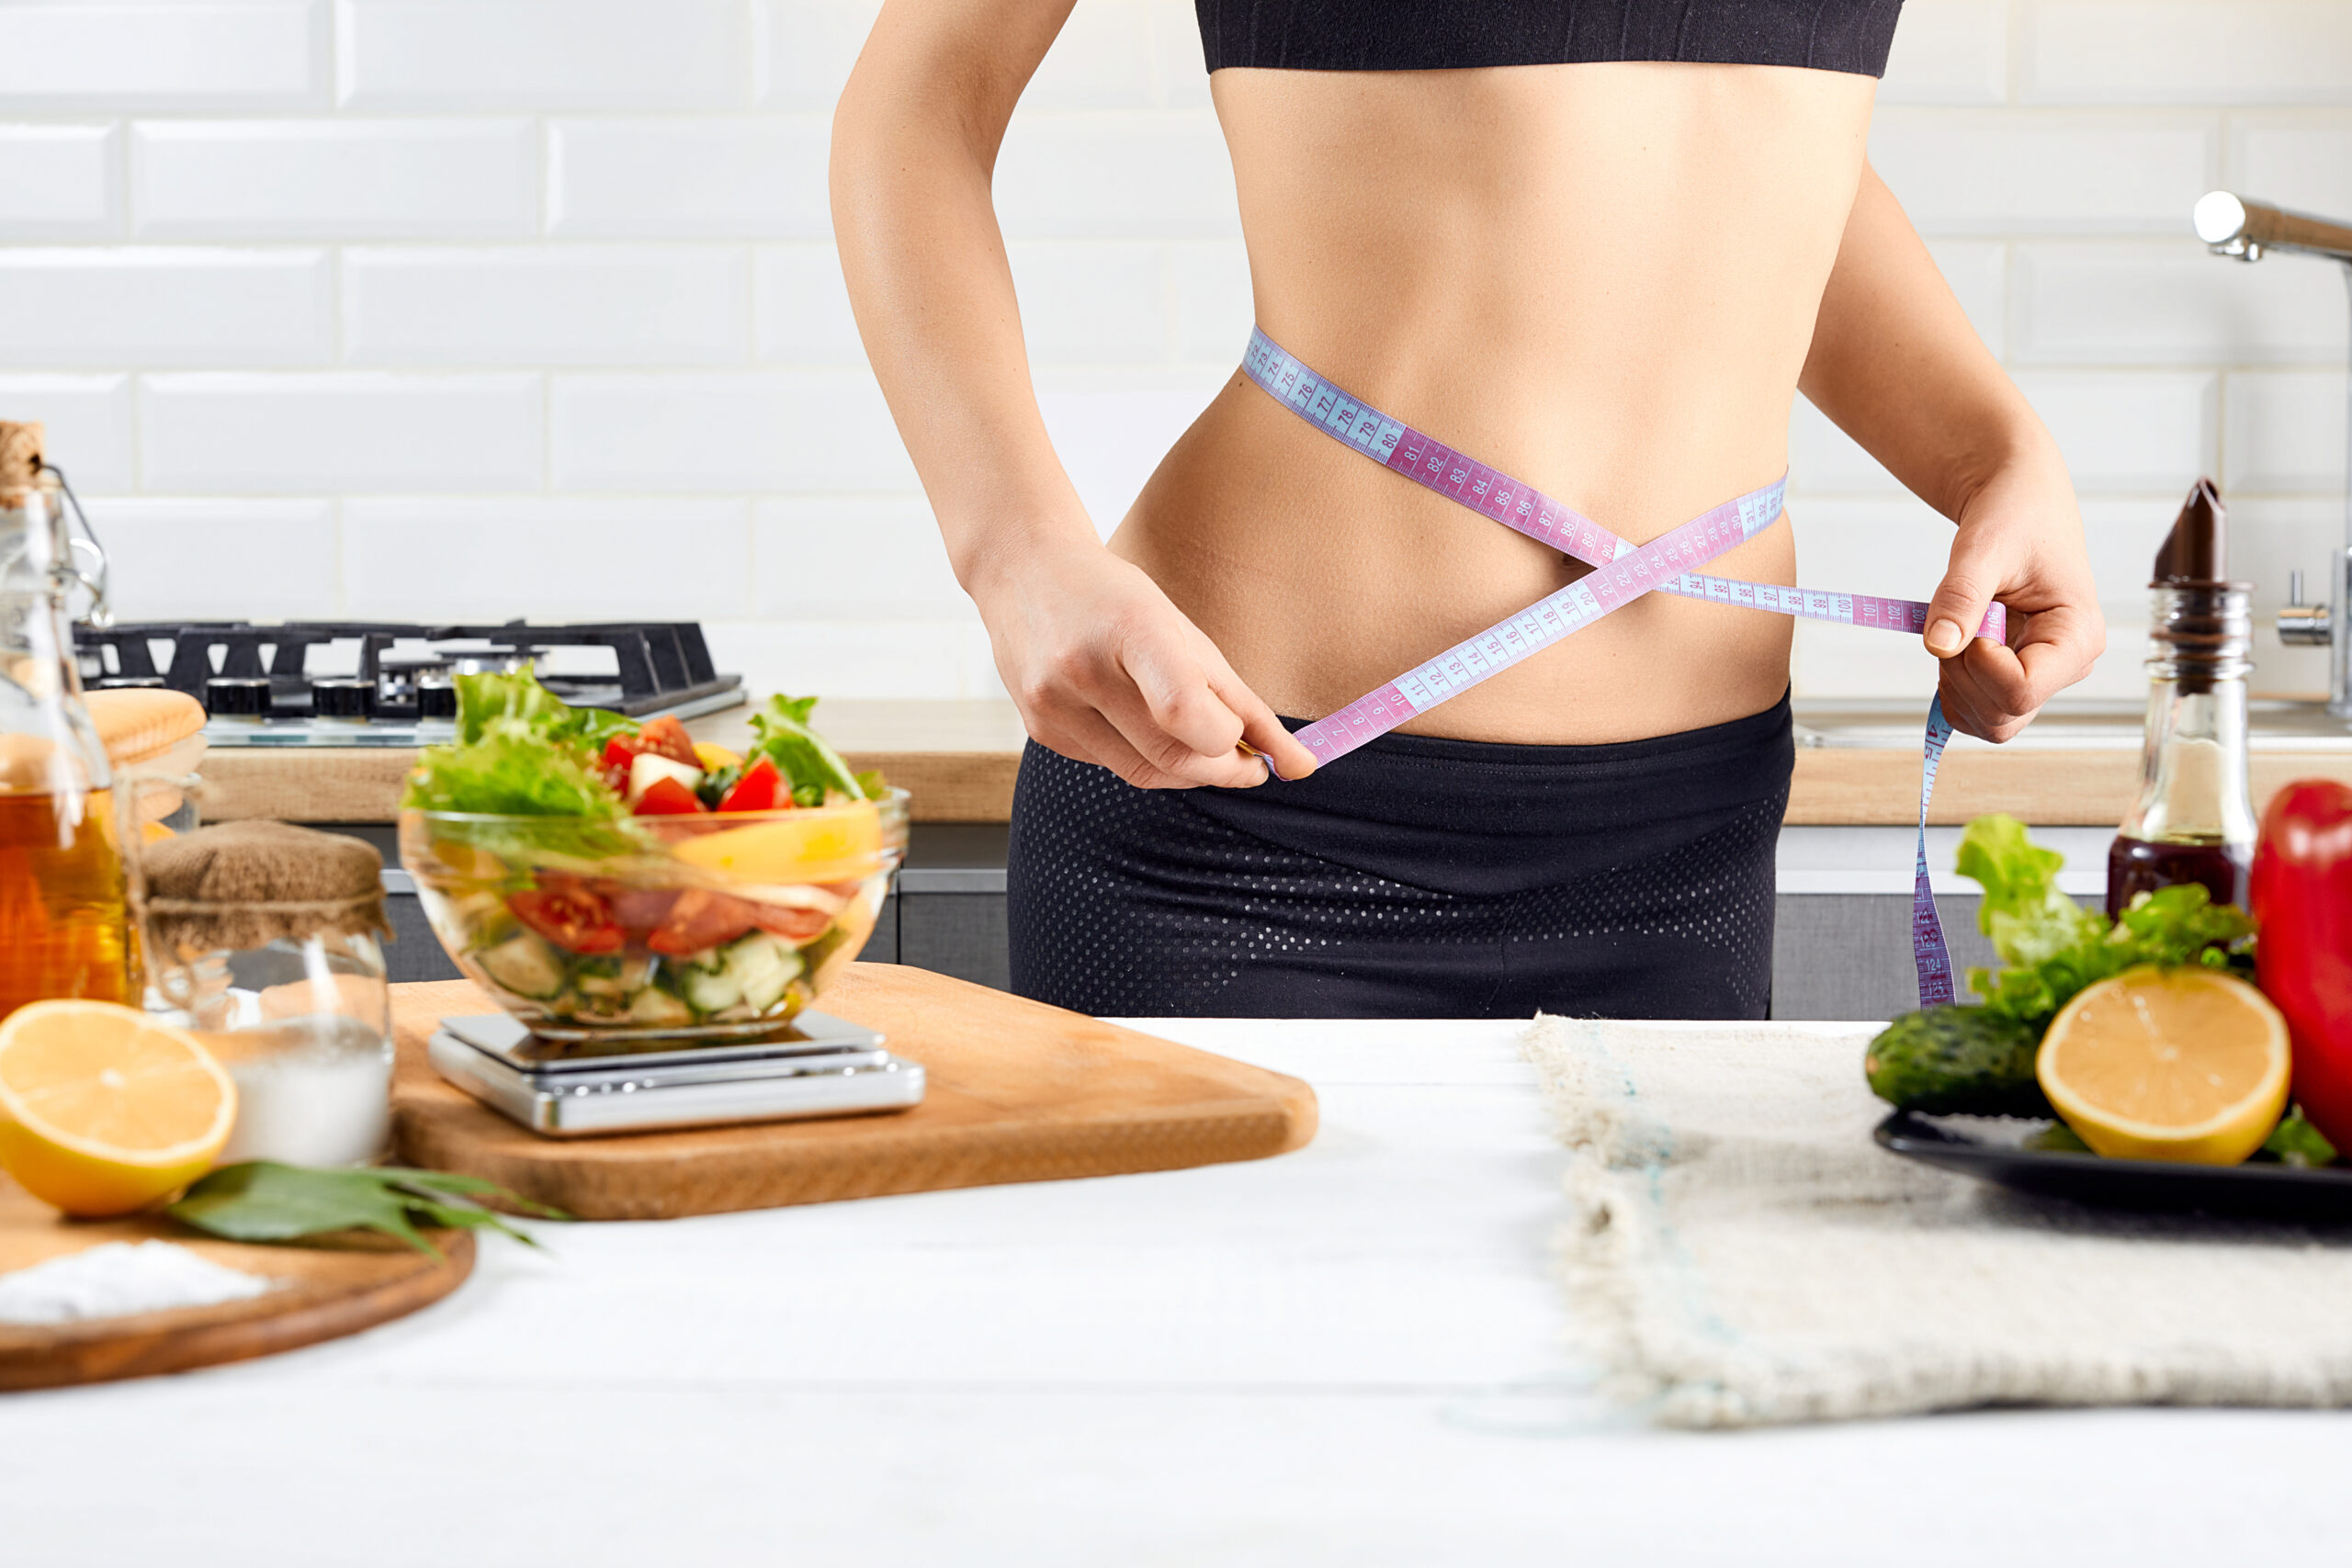 Diet, healthy eating, food and weigh loss concept. Young woman measuring waist near tomatoes, peppers and salad on the kitchen interior.